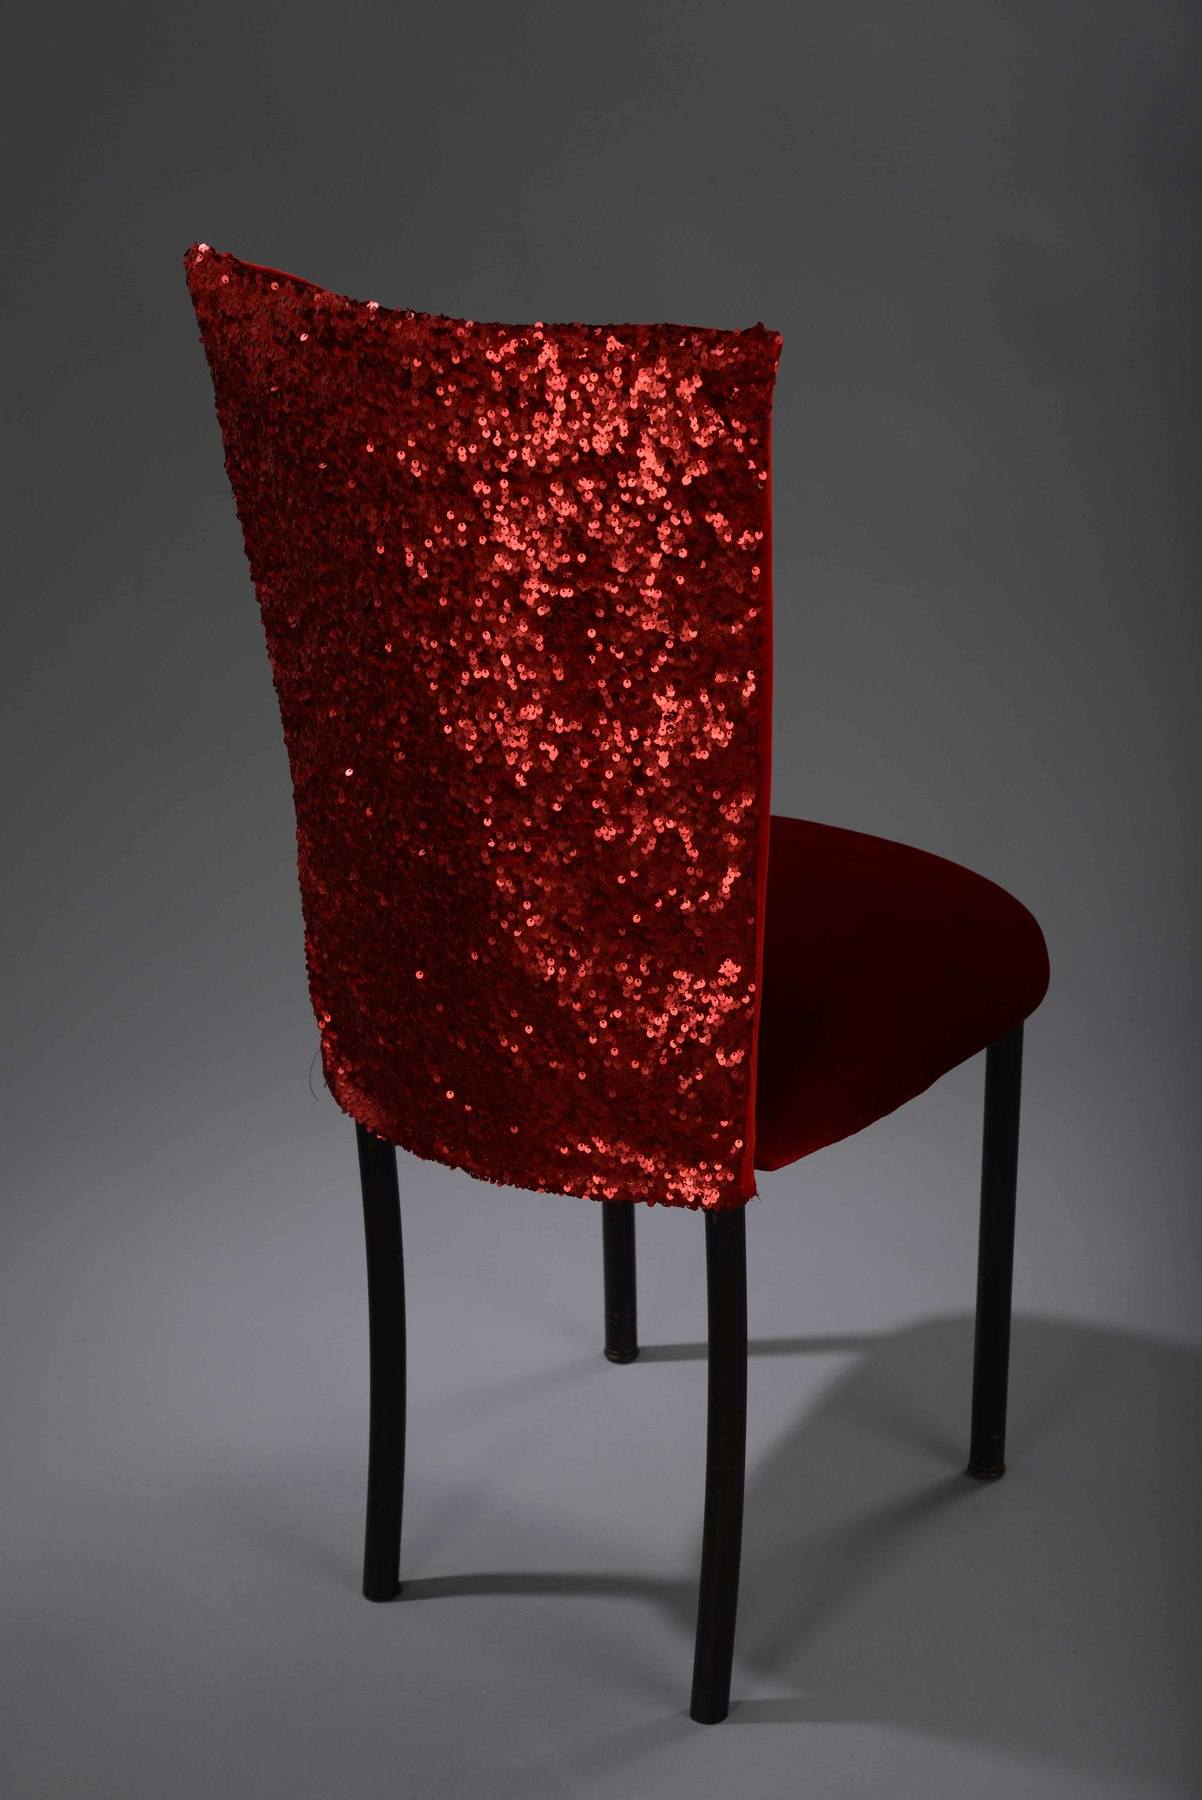 Red Sequin Taffeta Chameleon Chair Cover Nüage Designs